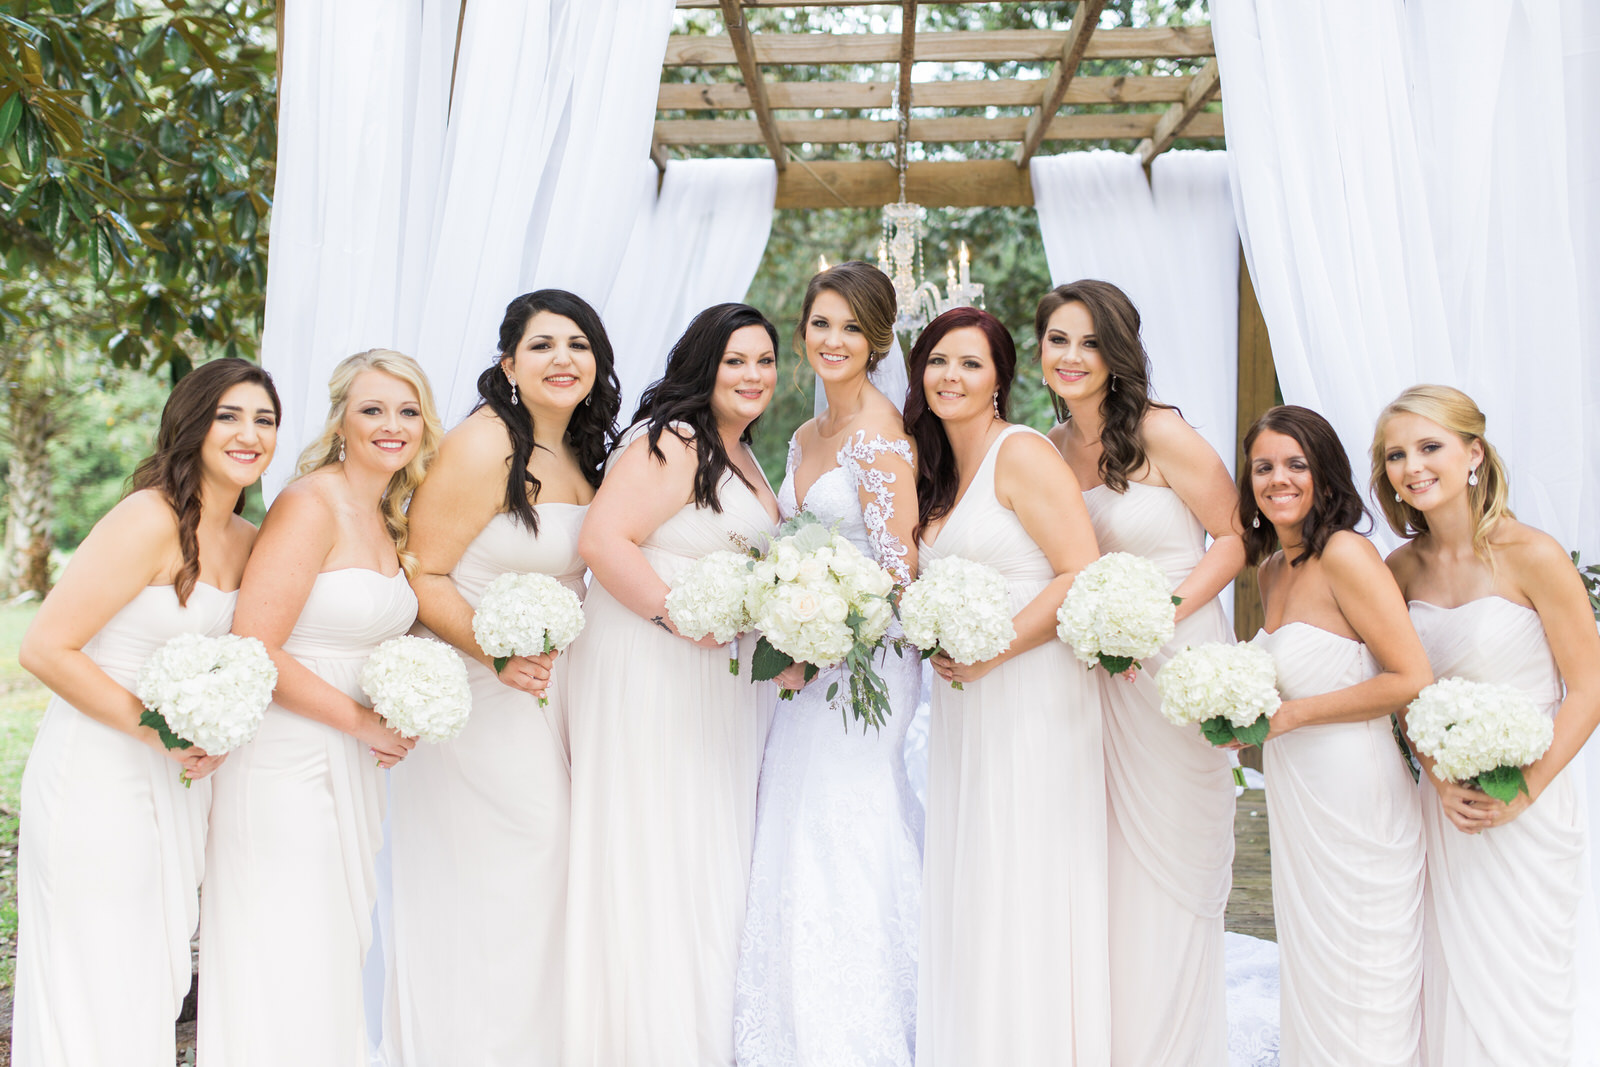 Bride with her bridesmaids in cream colored dresses, white bouquets